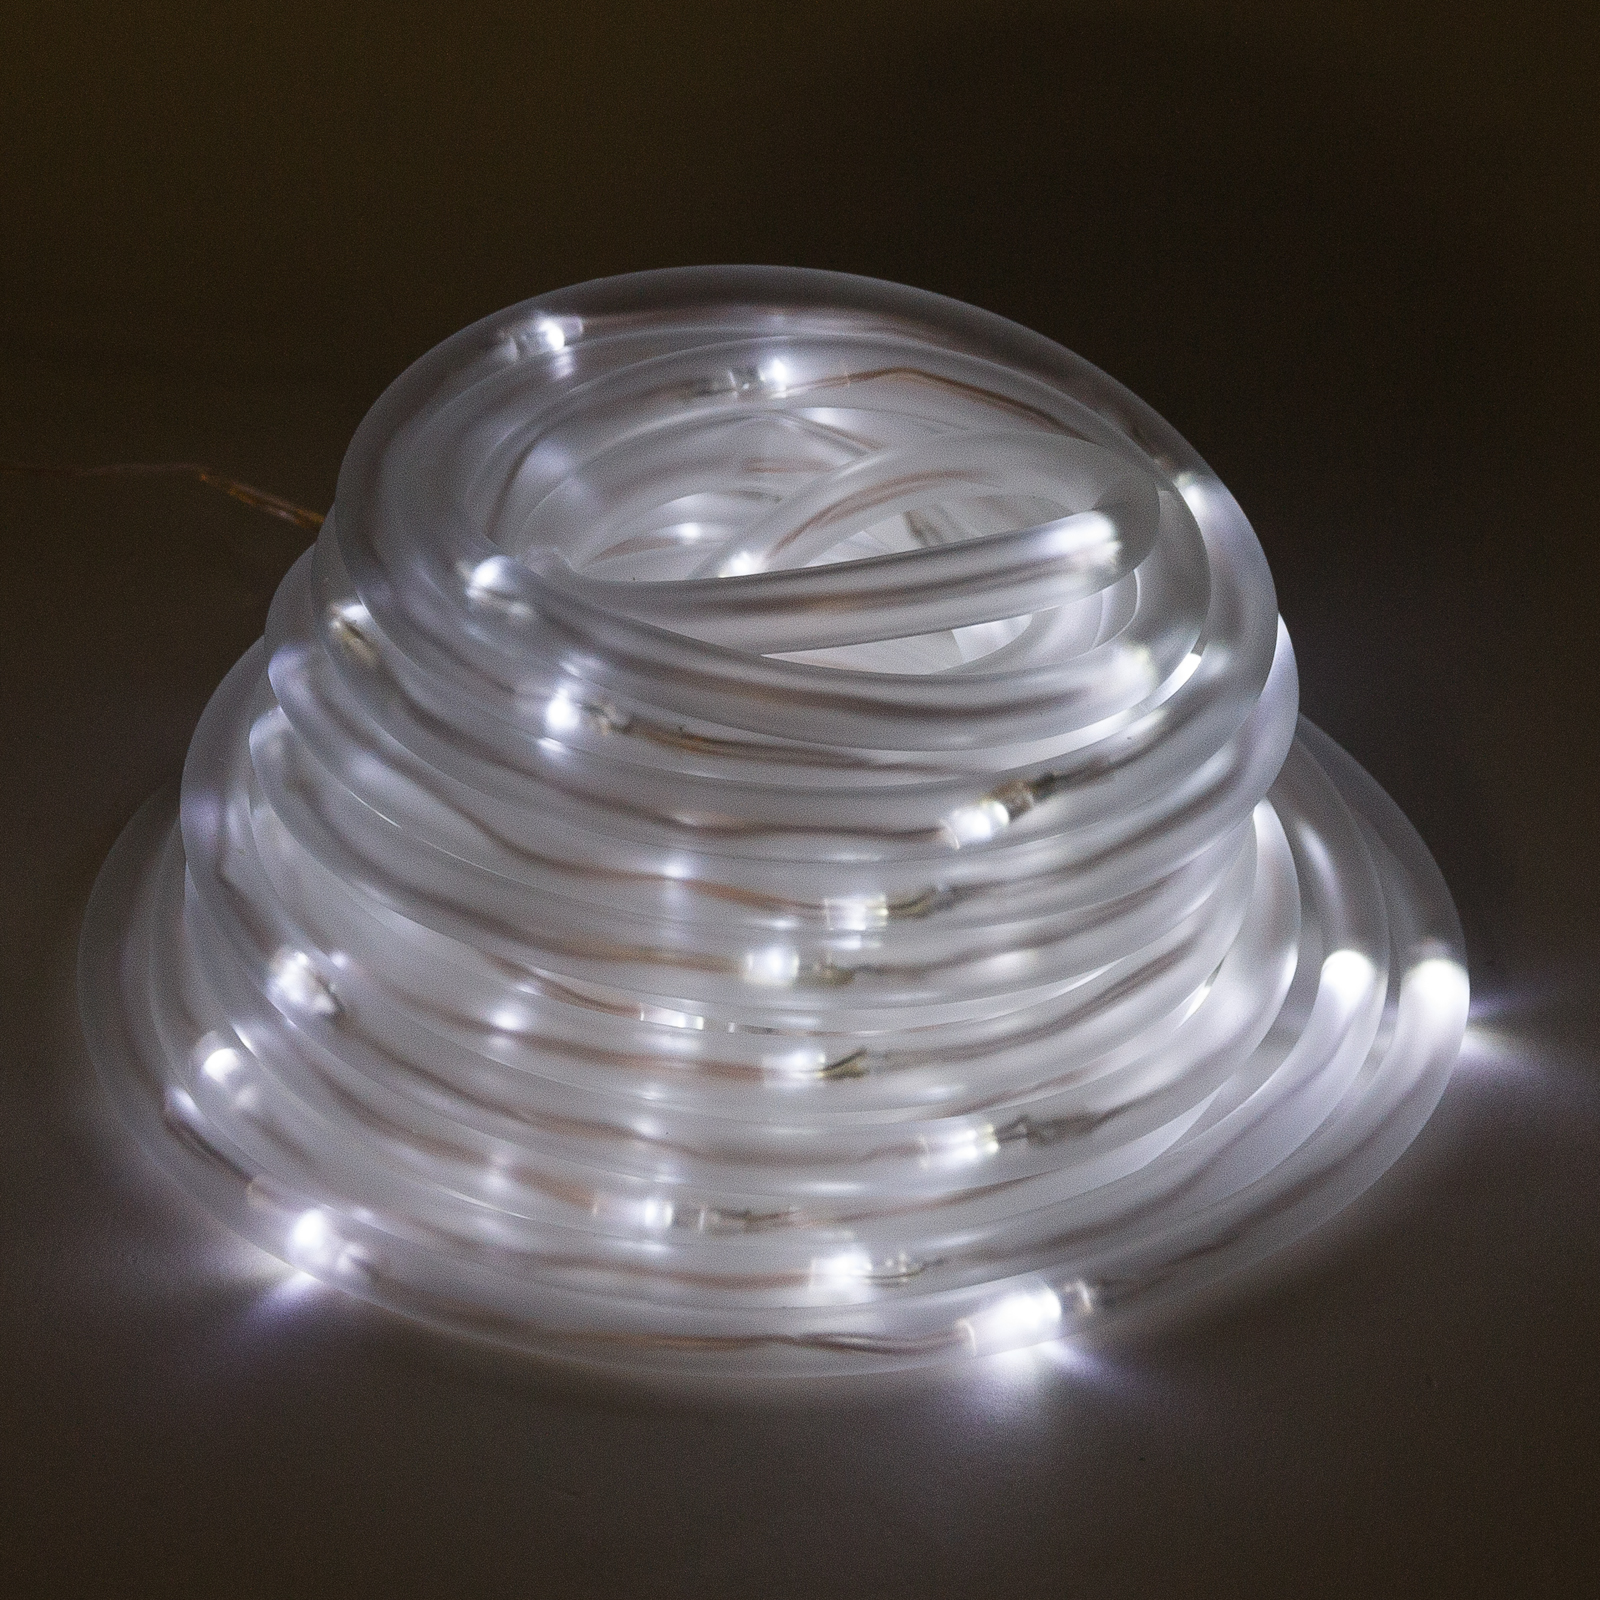 Solar Powered 100 White LED Rope Outdoor Garden Landscaping Decorative Light